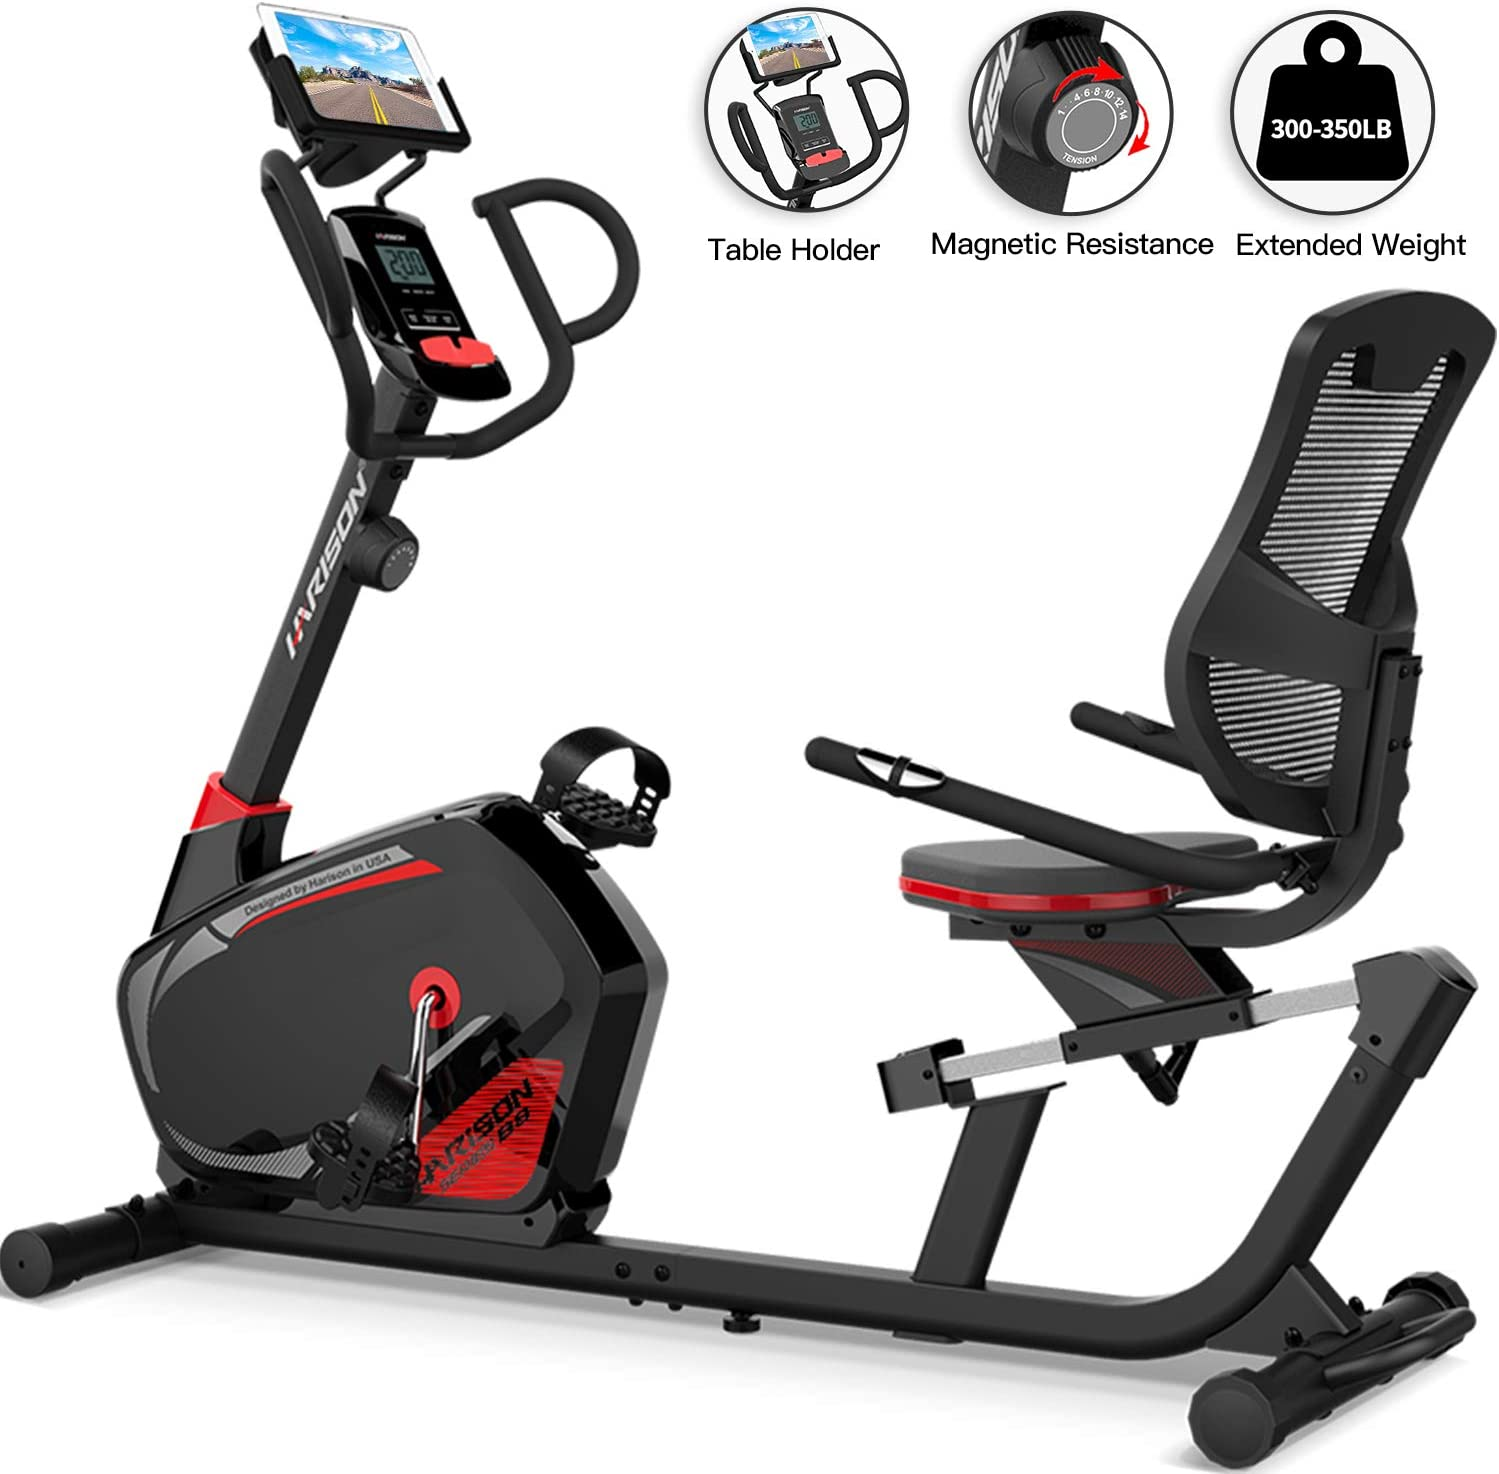 HARISON Recumbent Exercise Bike Stationary with 14 Level Magnetic Resistance, Tablet Holder, RPM, Wide Seat, and Pulse Rate Monitoring